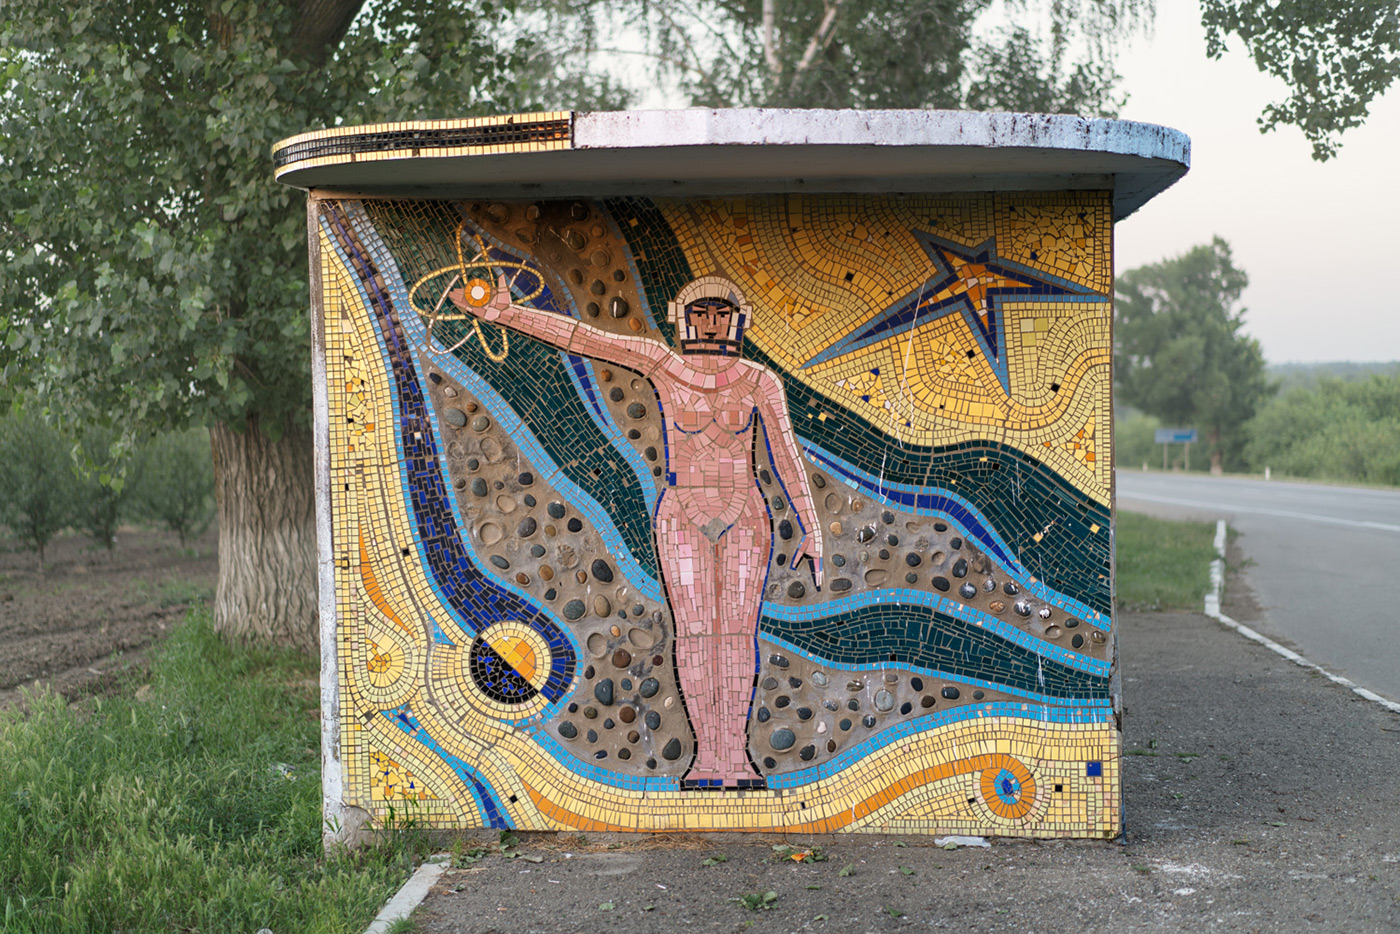 The Wild Architecture of Soviet-Era Bus Stops Photographed by Christopher Herwig